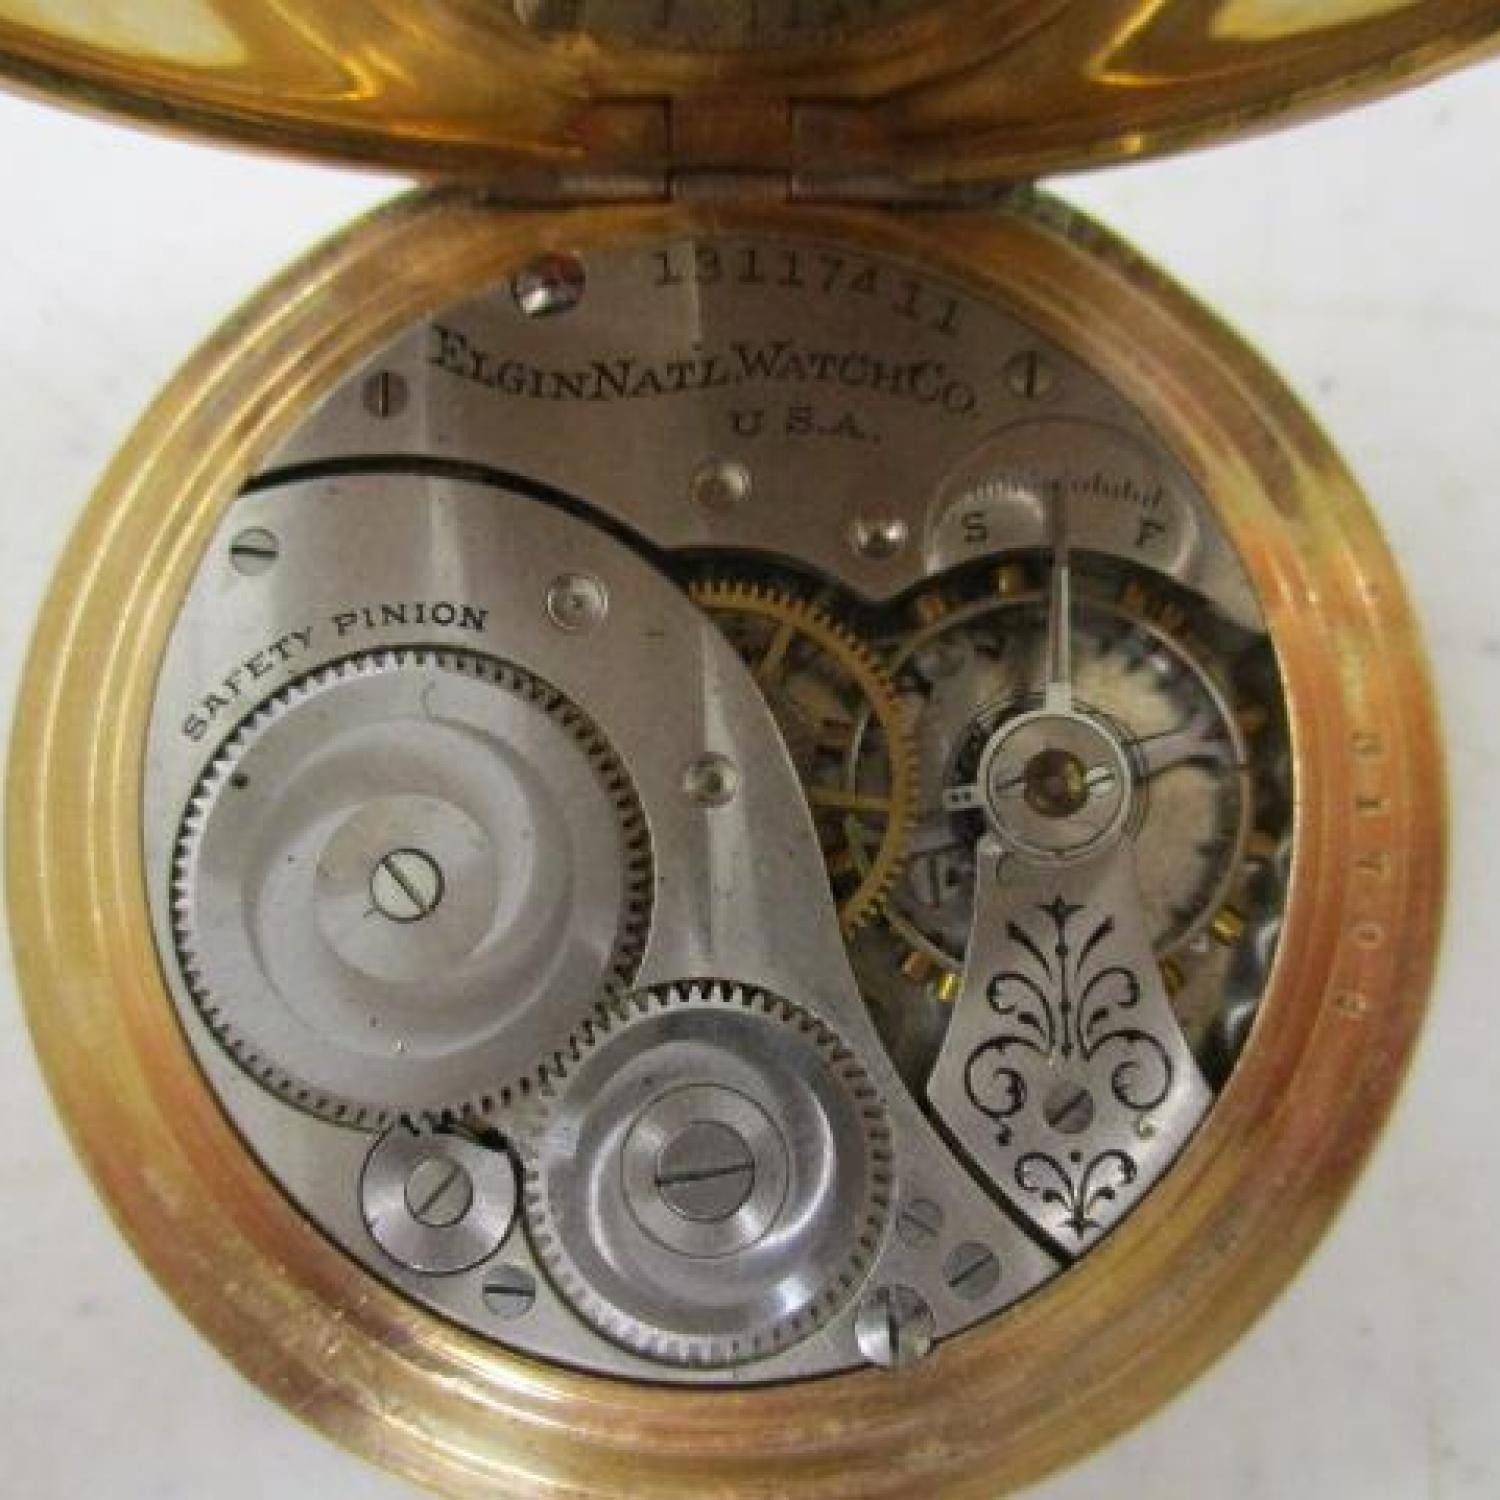 Image of Elgin 356 #13117411 Movement